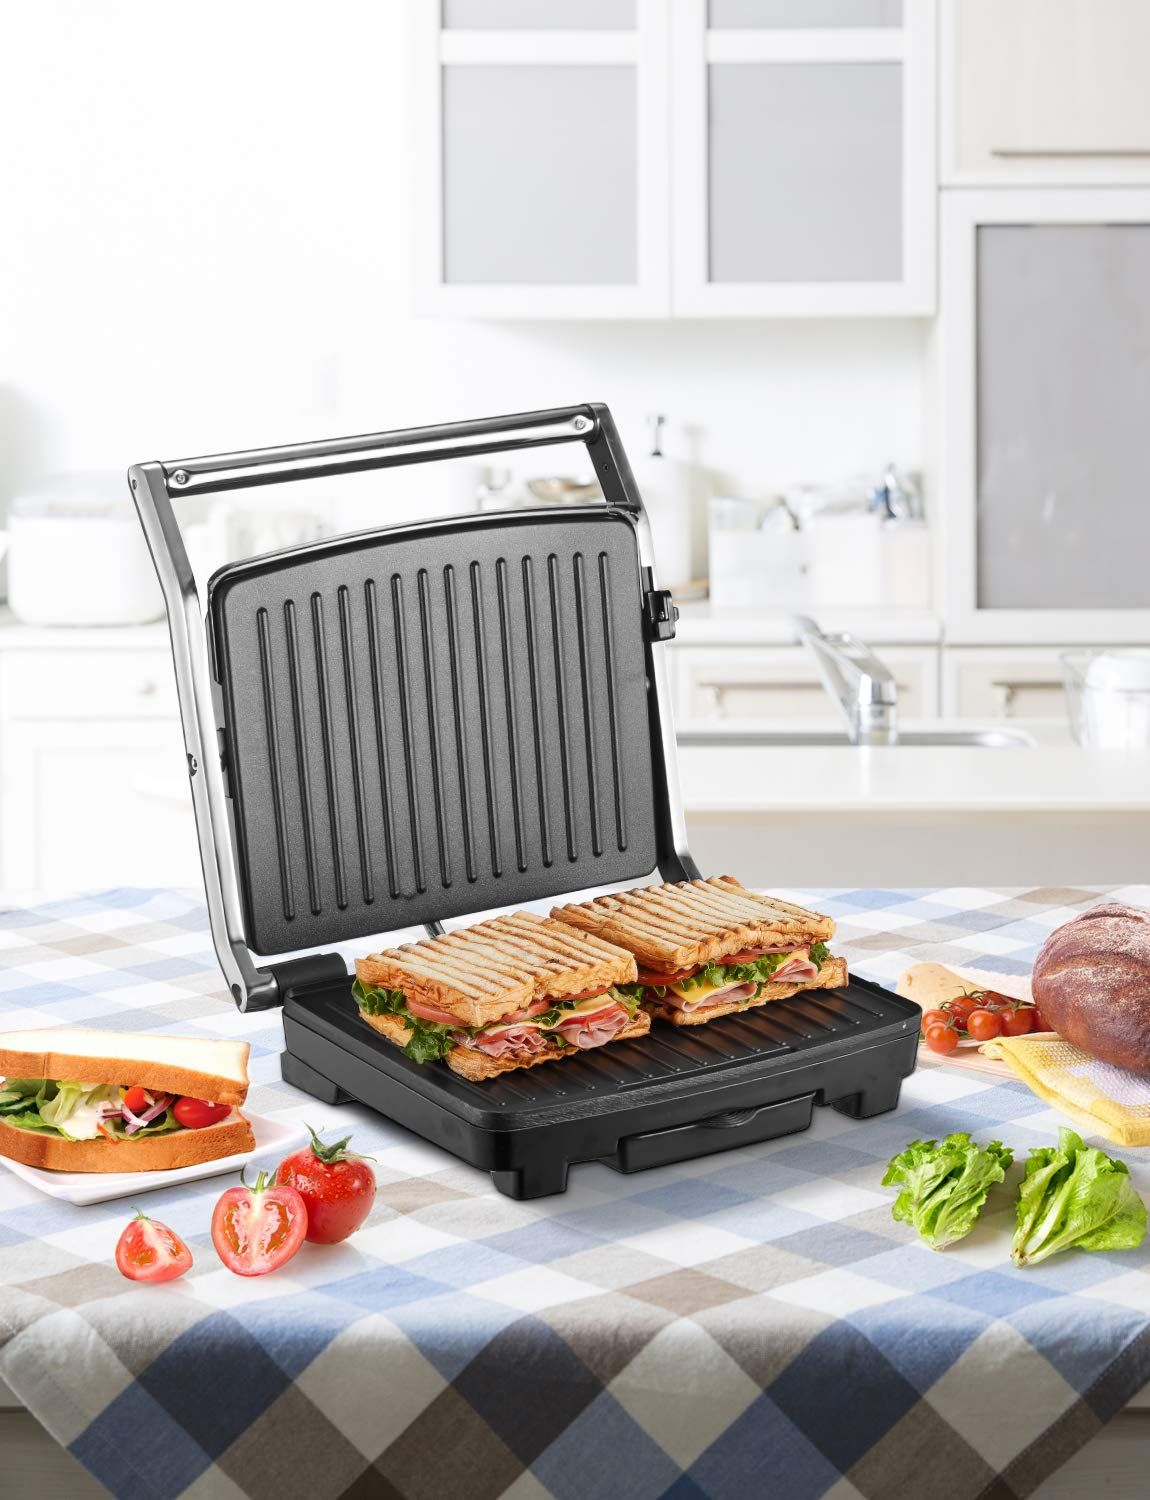 Electric Griddles Kitchen & Dining Cuisinart 5 in 1 Grill